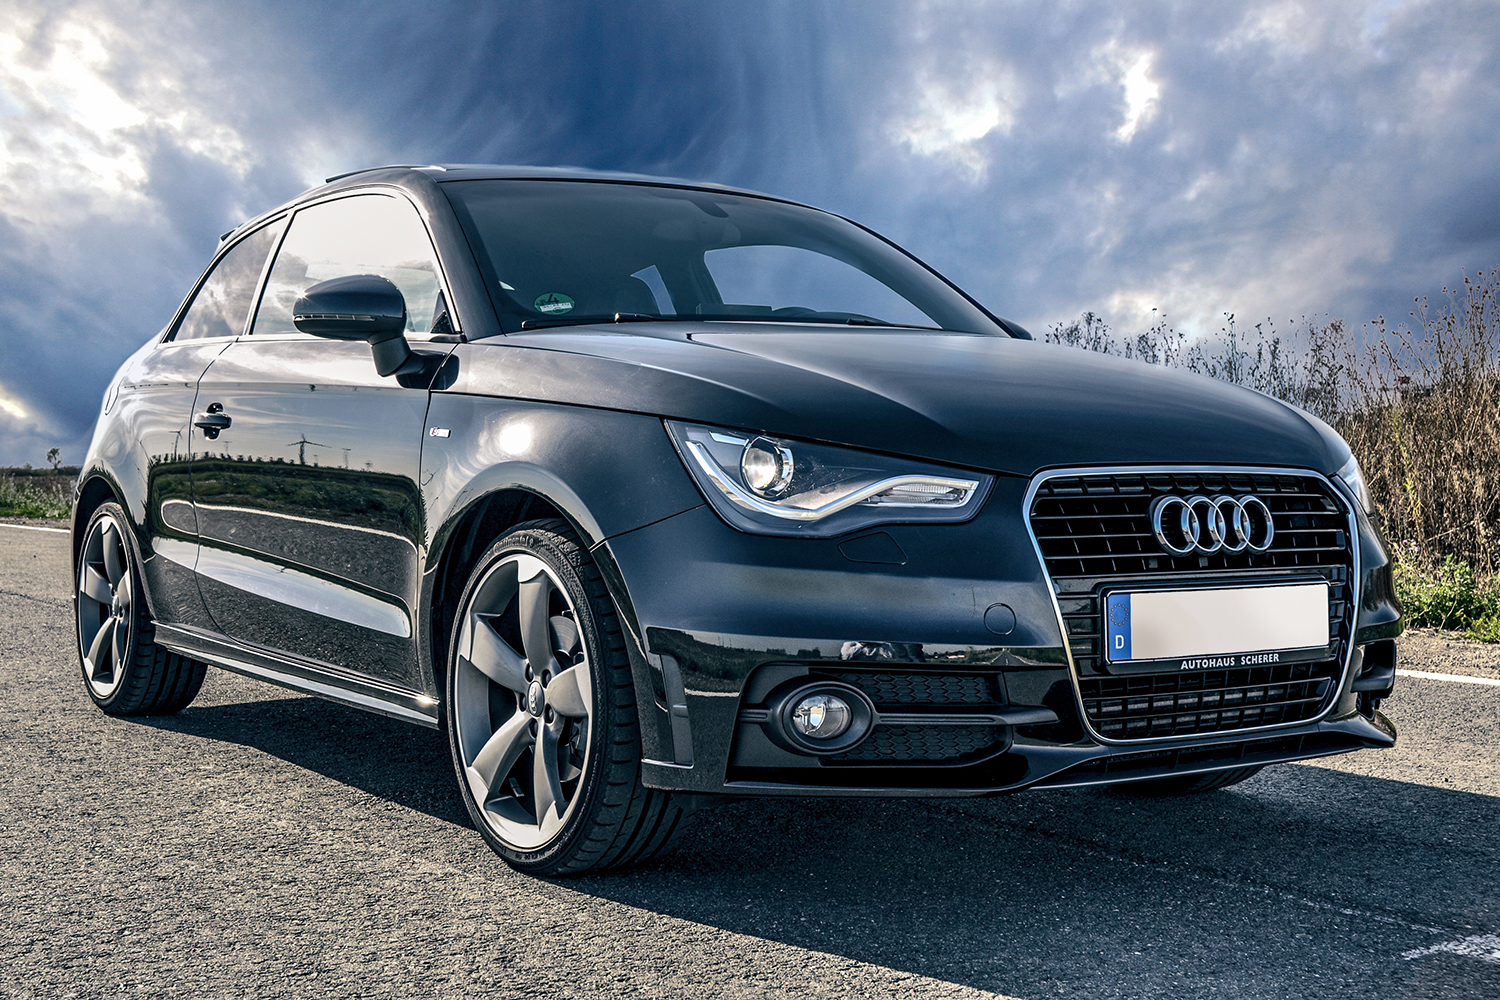 "<span style=""font-weight: bold;"">Audi A1</span><br>"